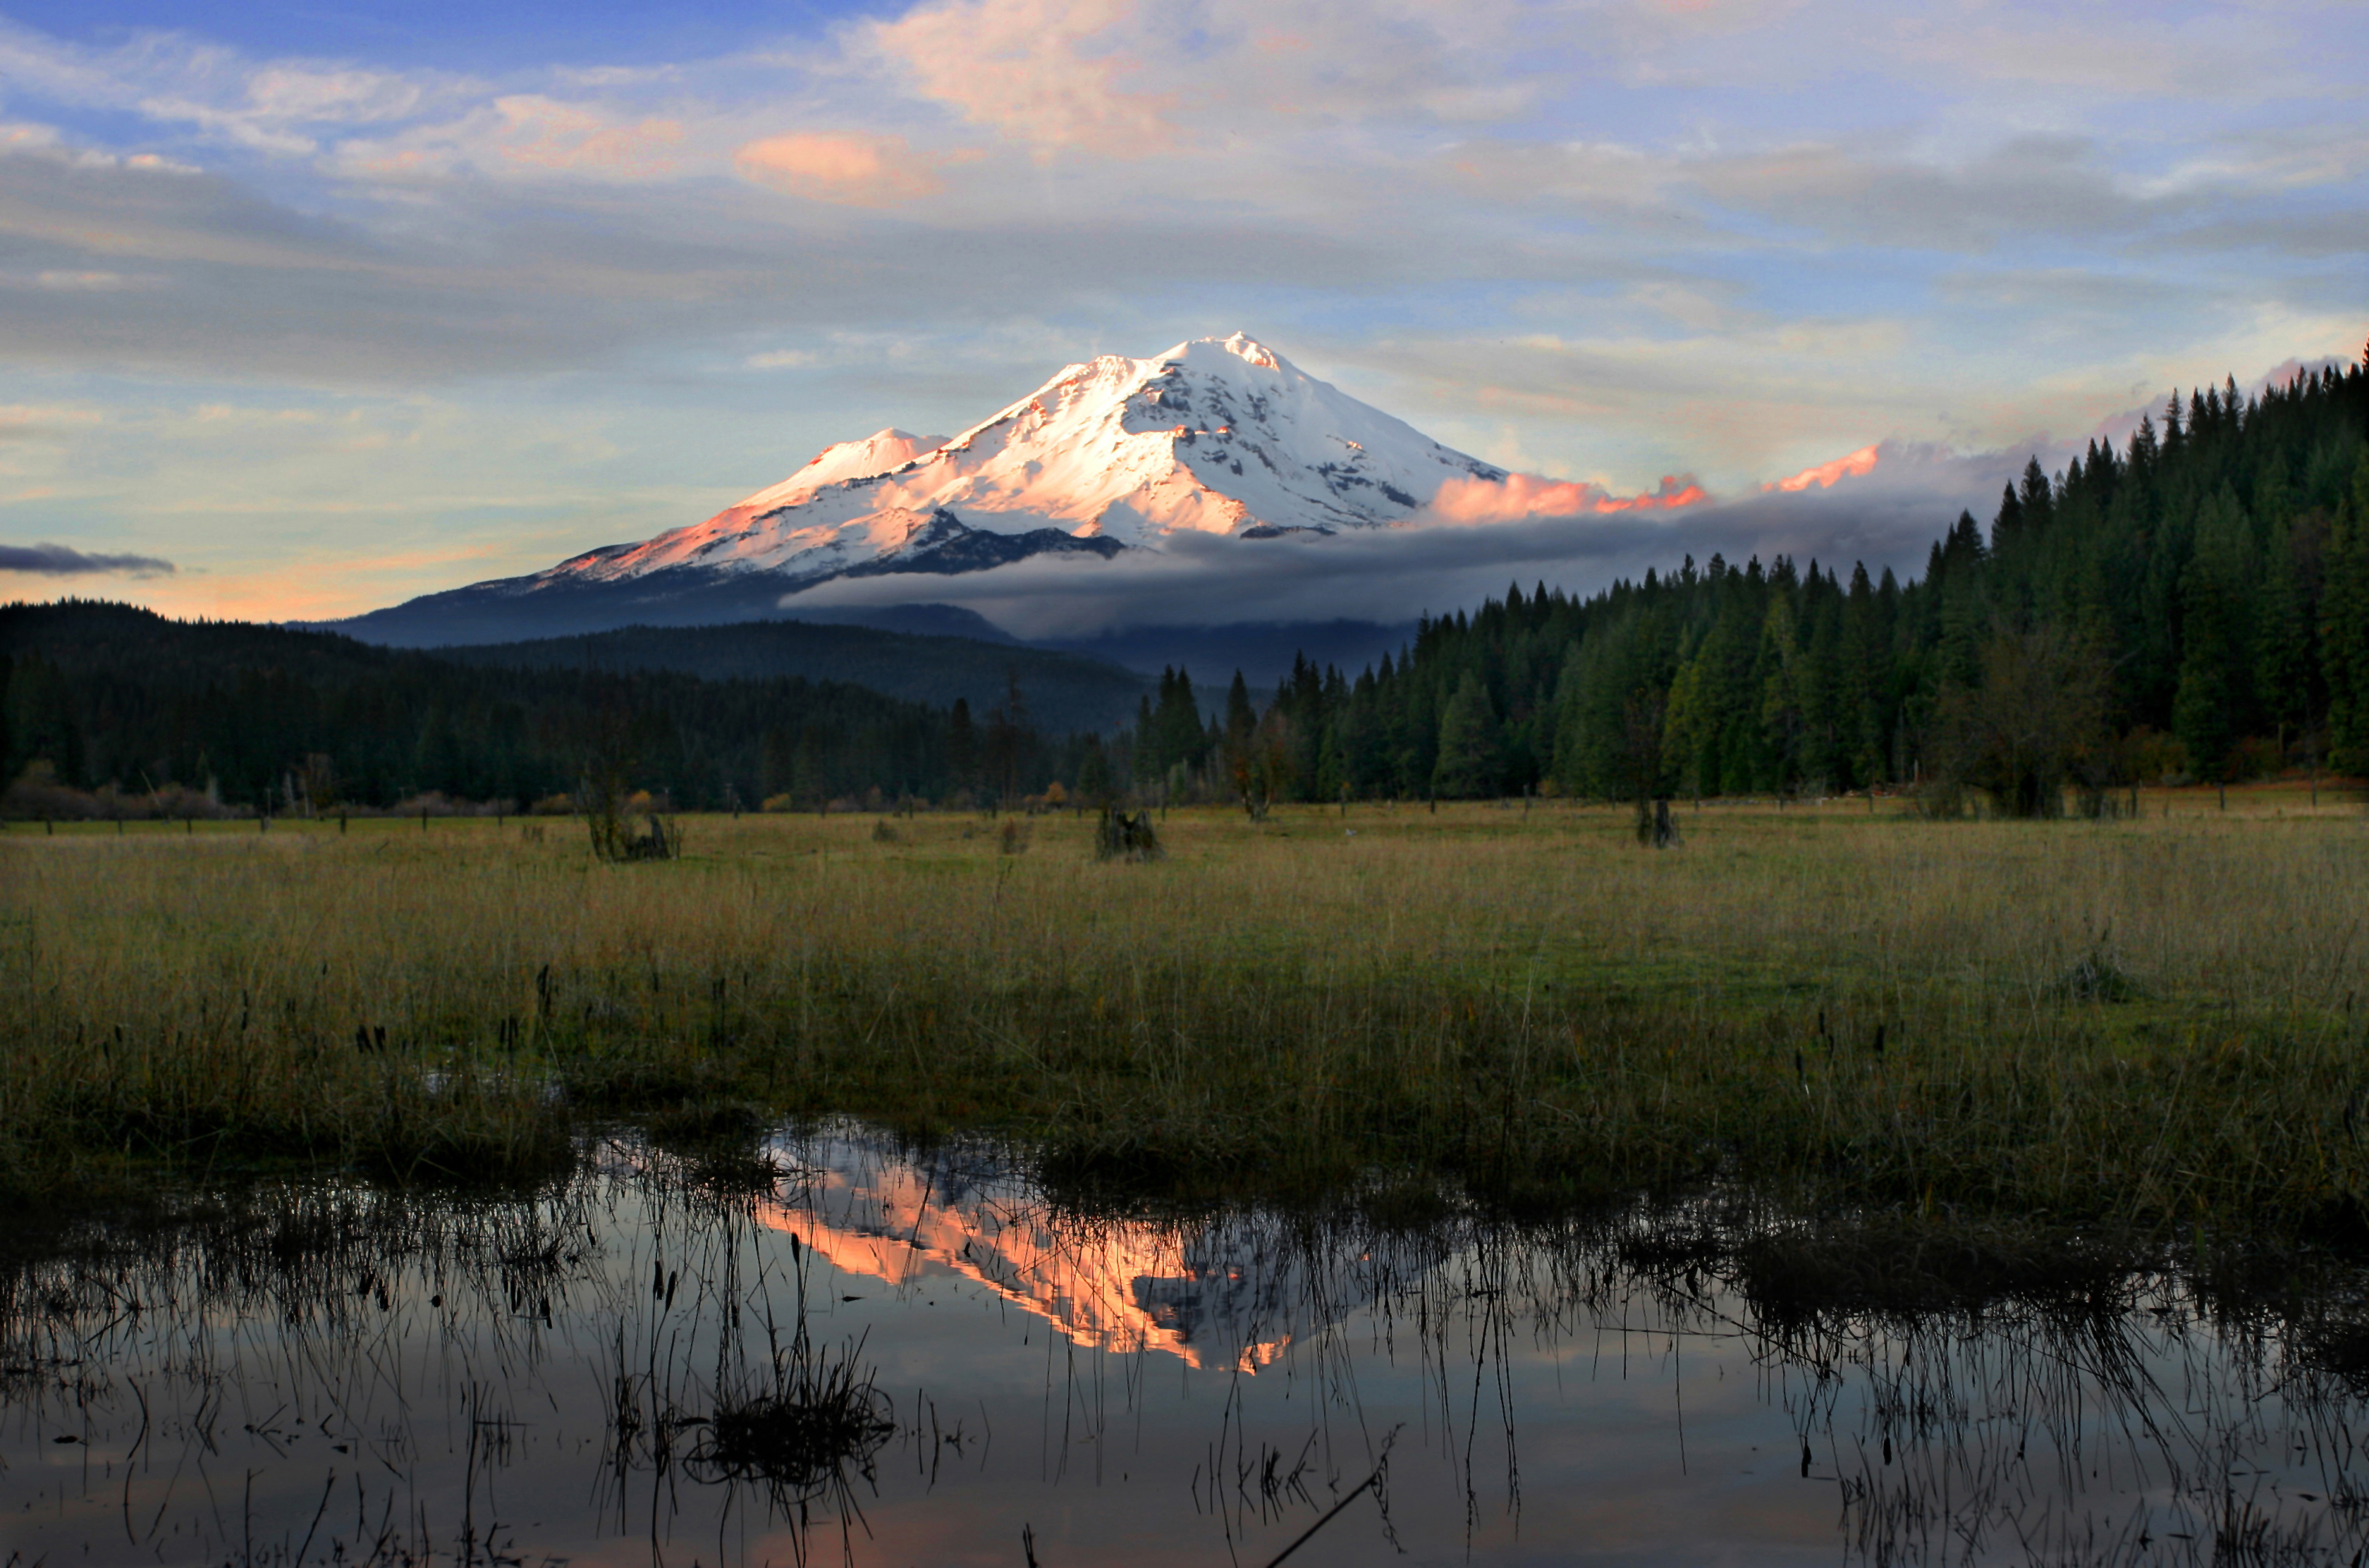 picture of mt. shasta at sunset